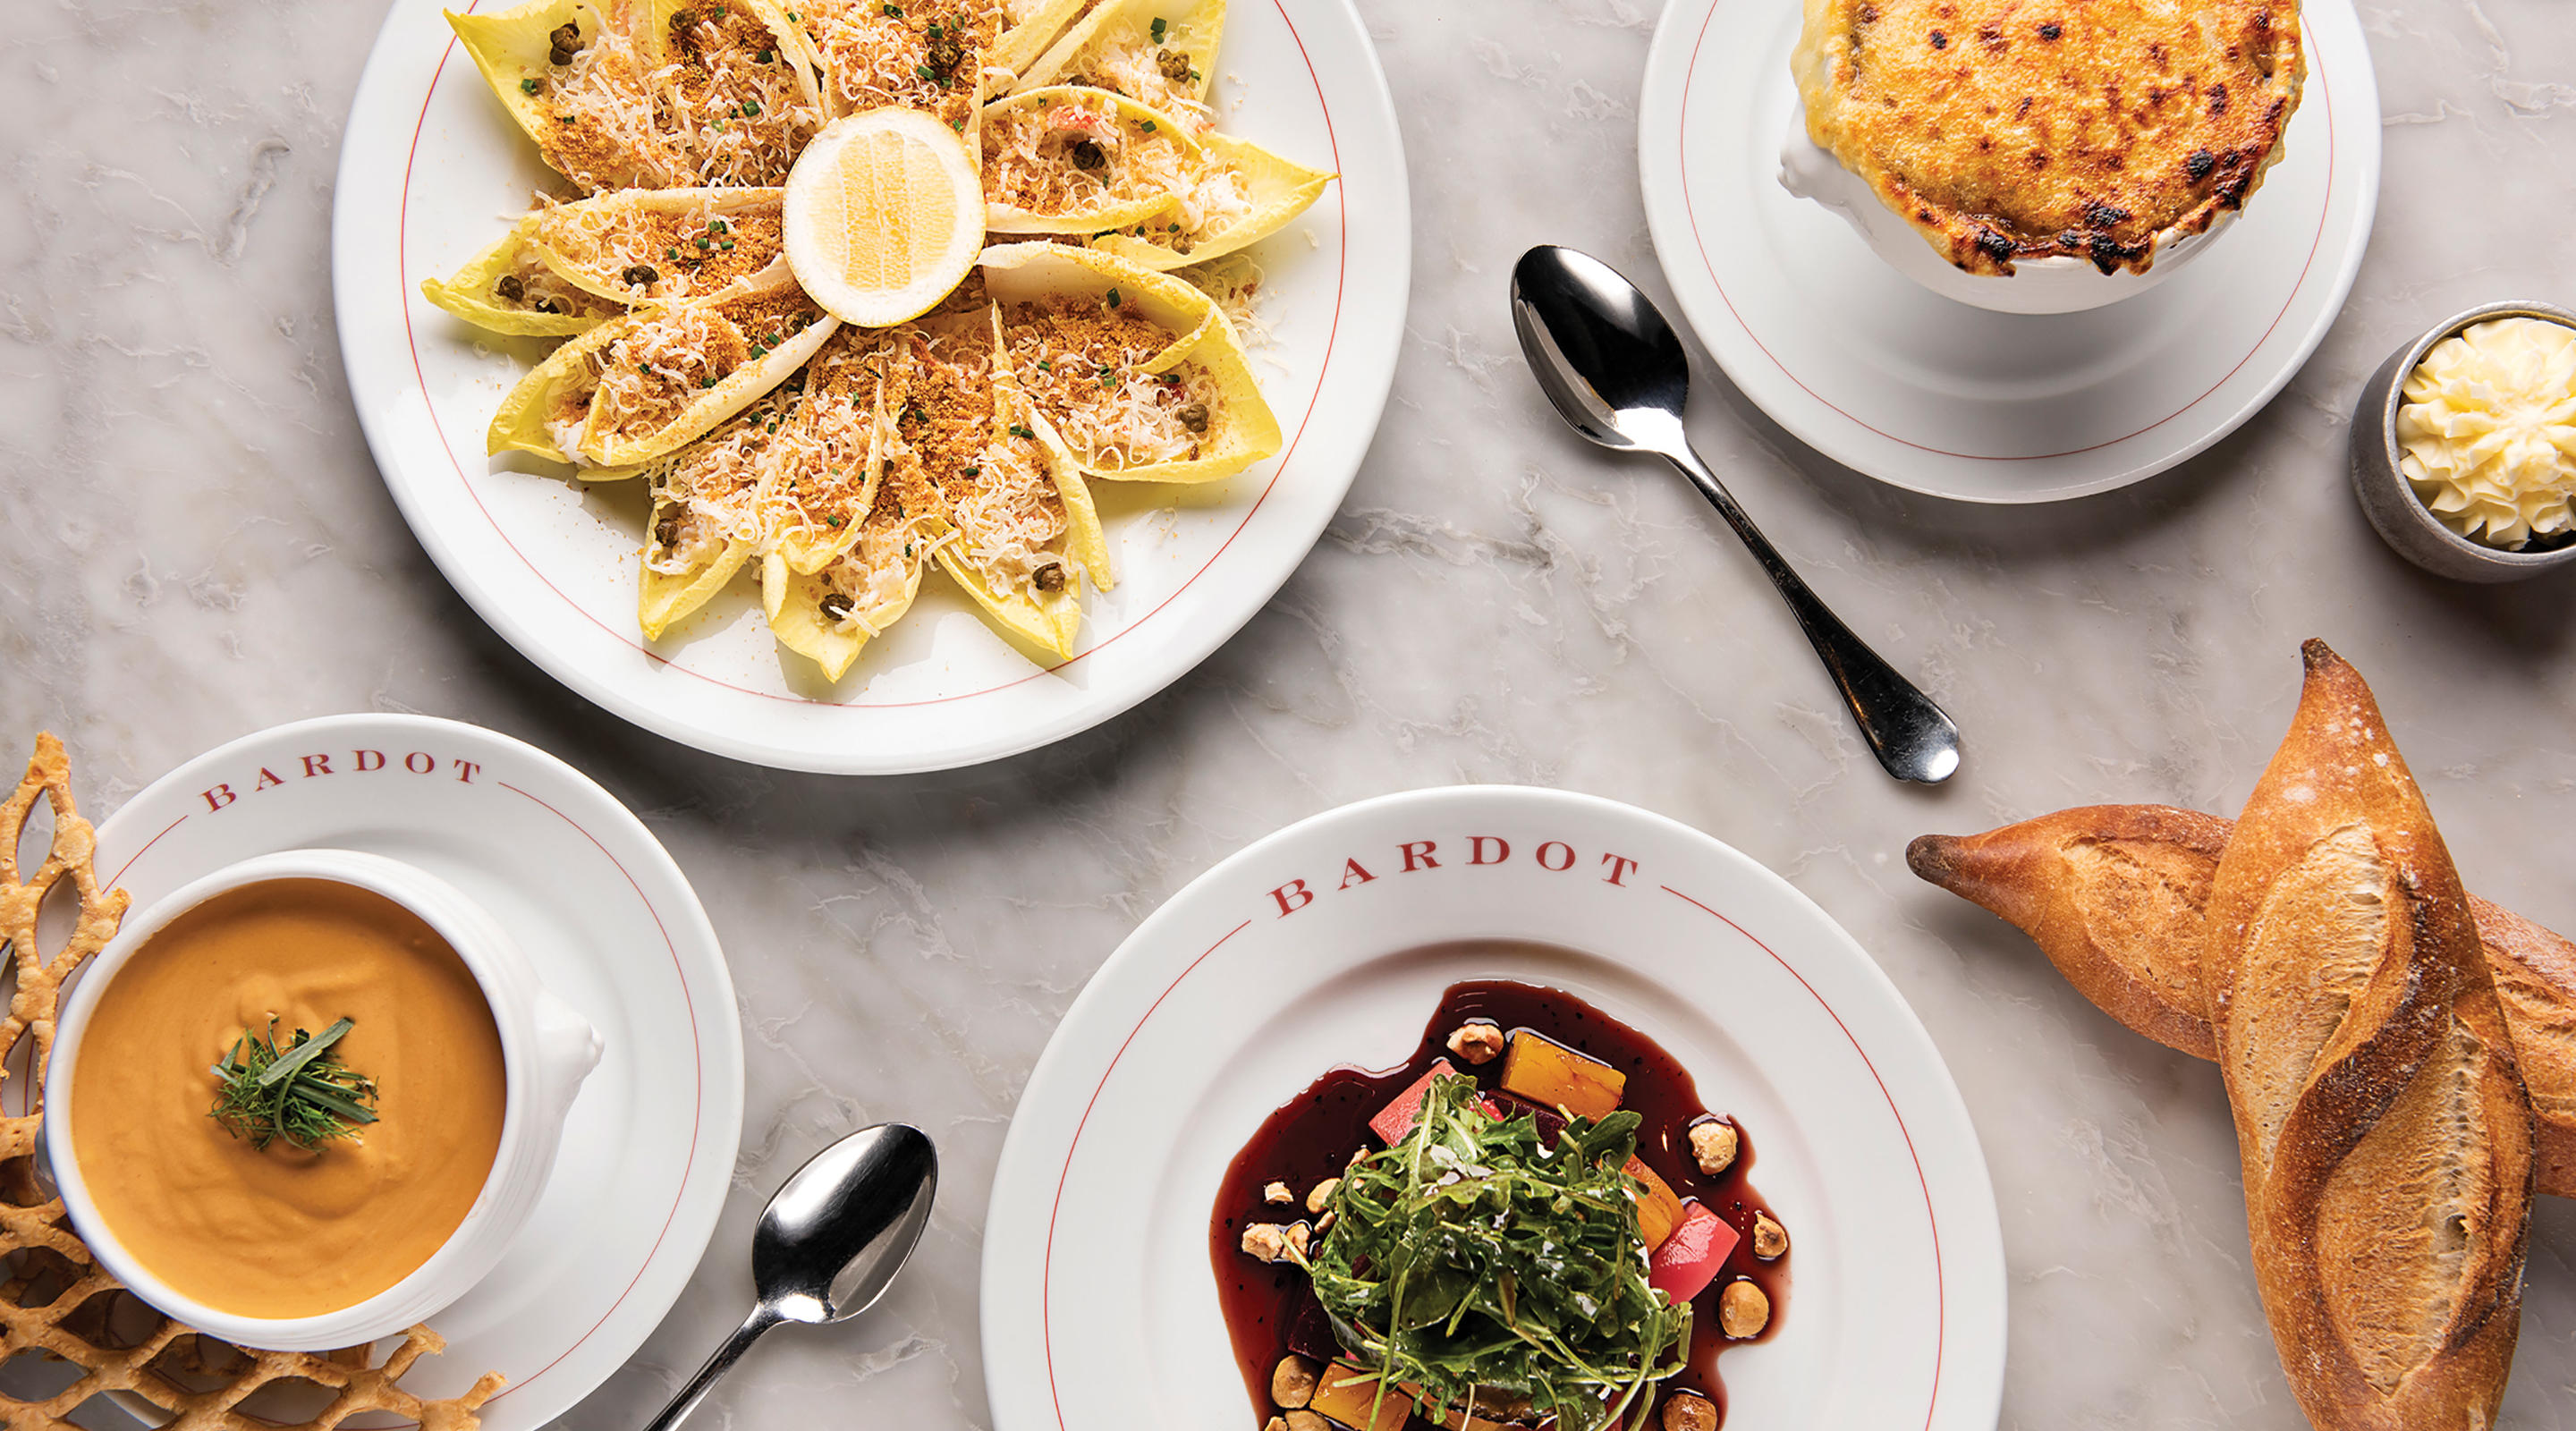 View from above of several dishes available at Bardot.